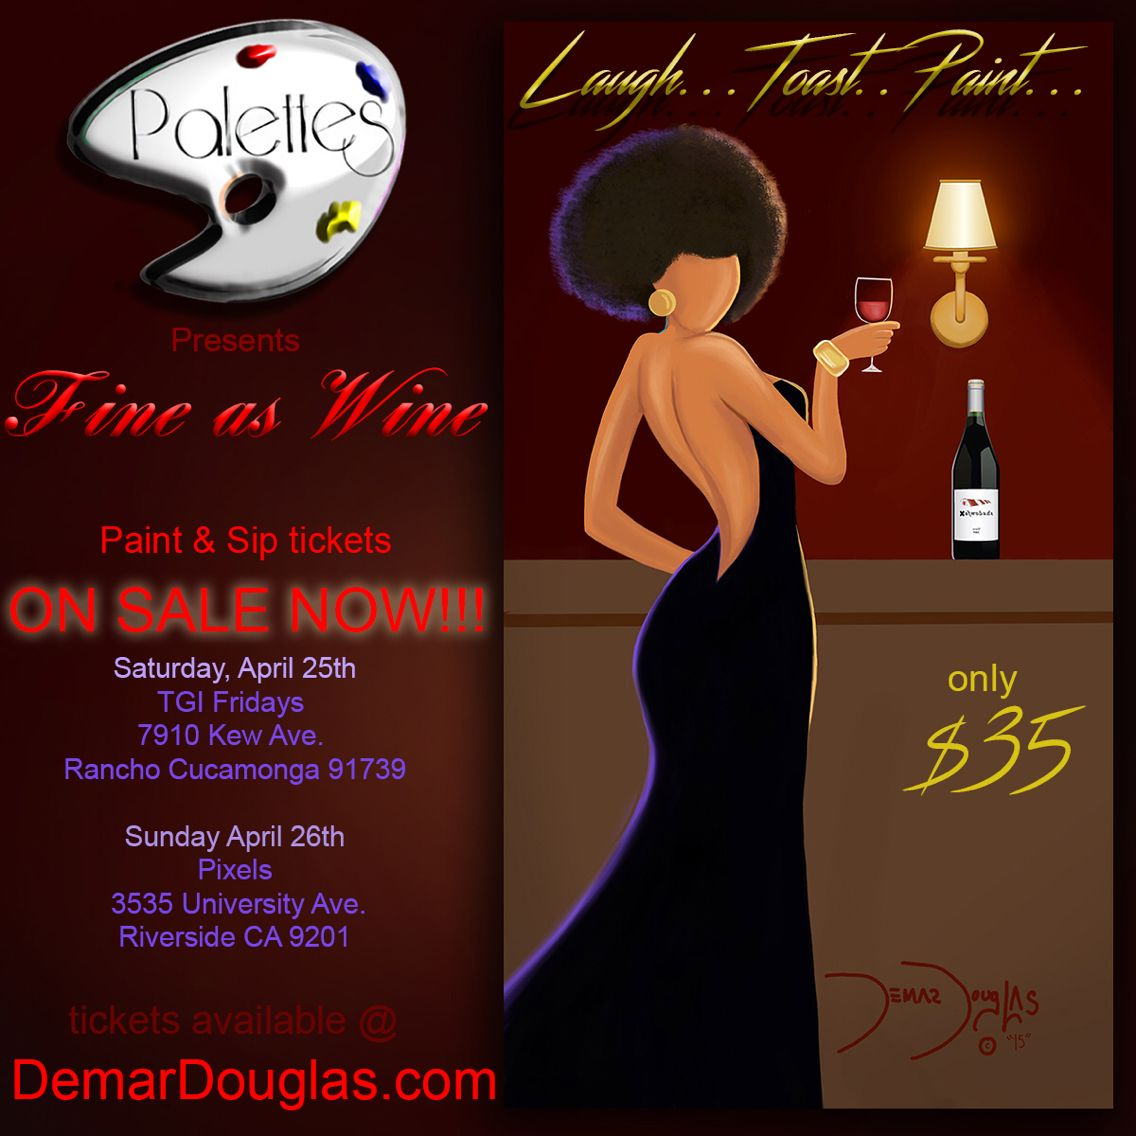 Come Paint And Sip With Palettes By Demar Douglas Limited Seating So Get Your Tickets Now At Www Demardouglas Wine Painting Paint And Sip Riverside University